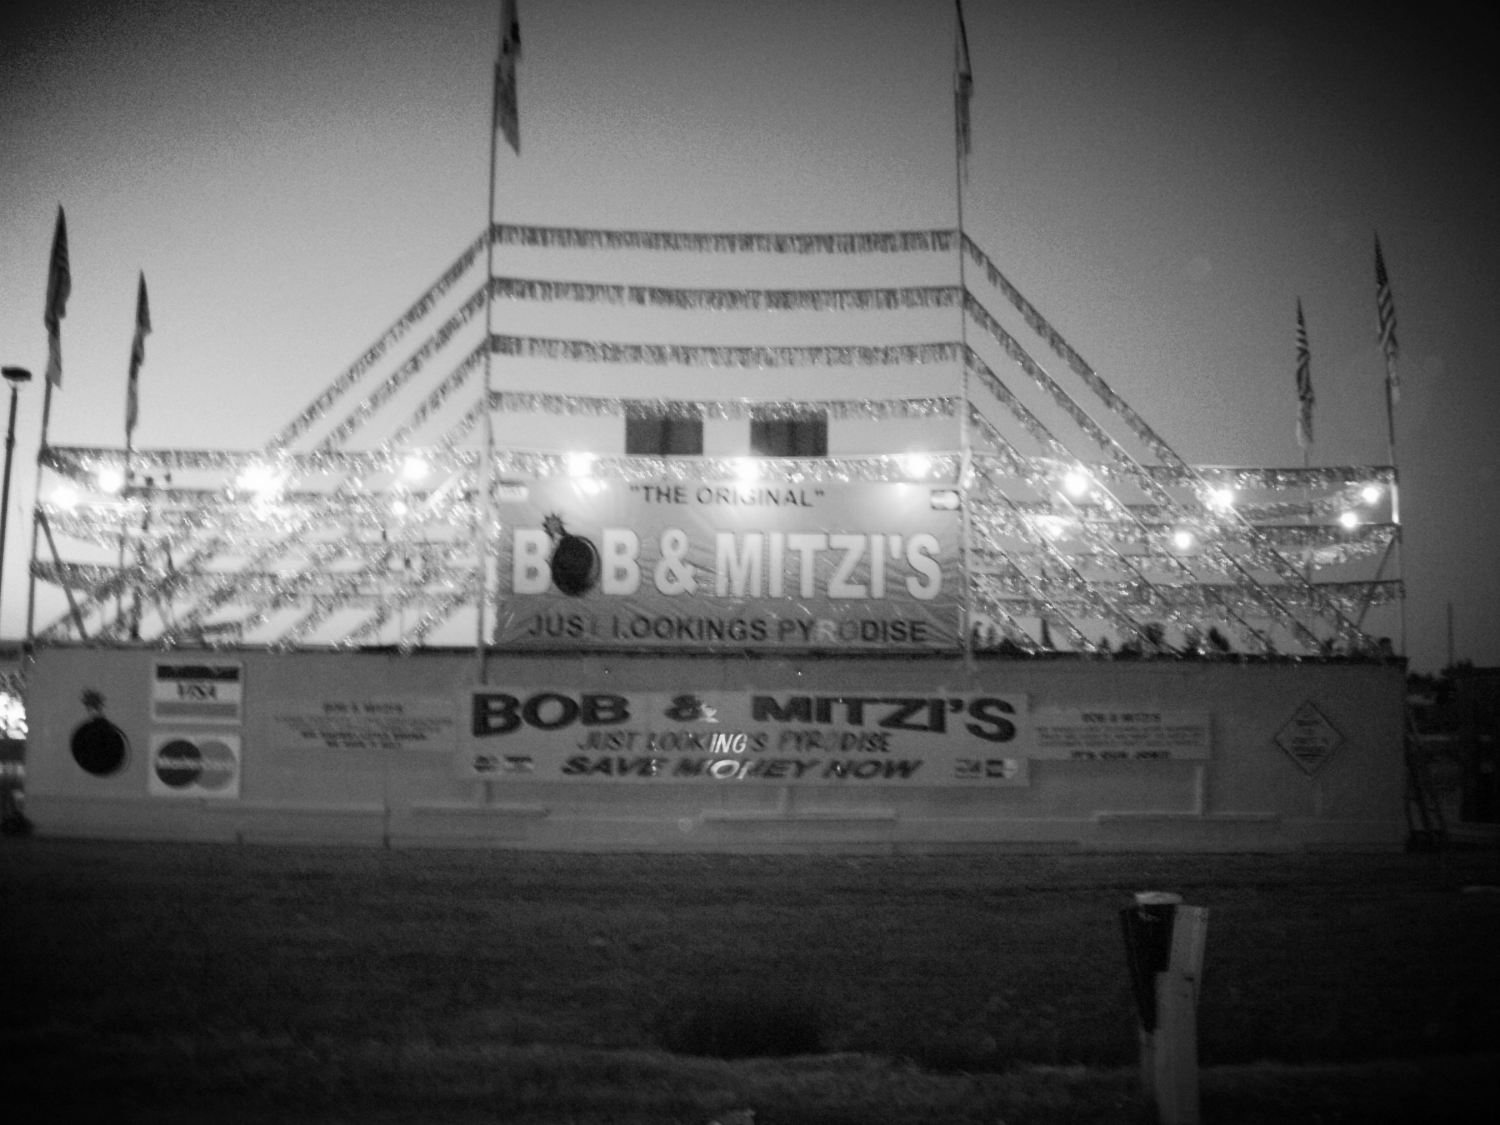 Rear view of Bob & Mitzi's